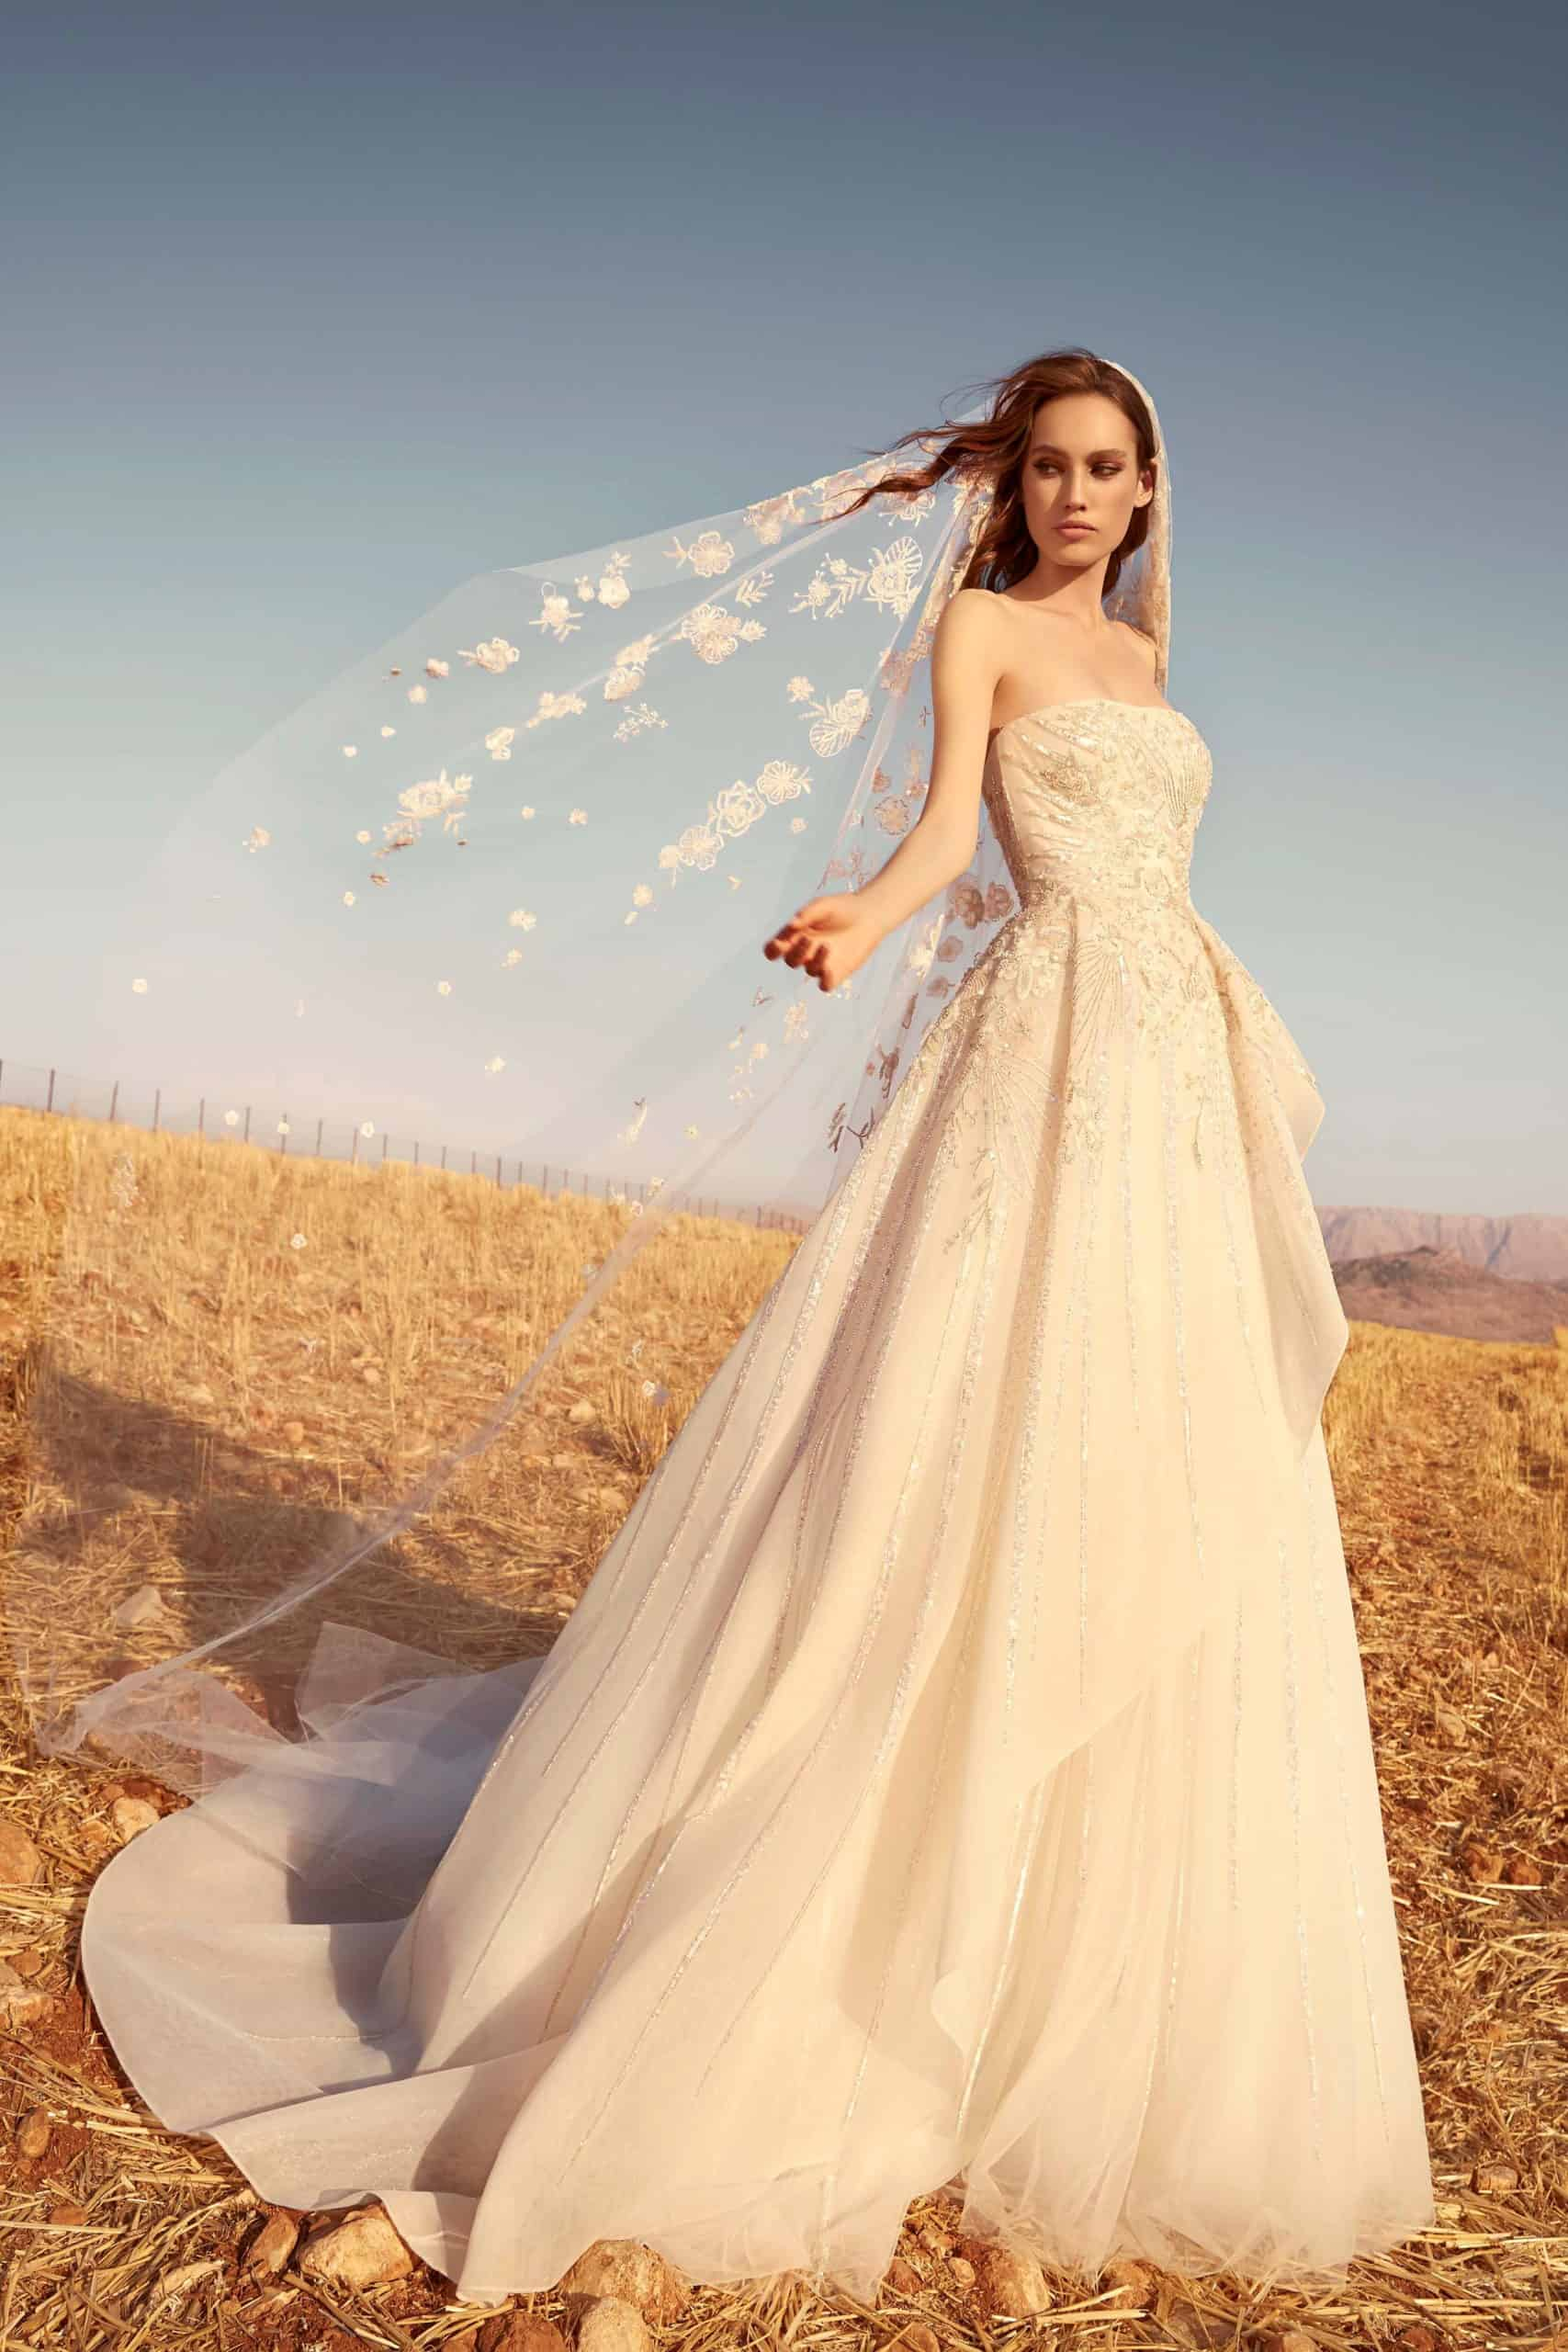 a-line strapless wedding dress with lace veil by Zuhair Murad